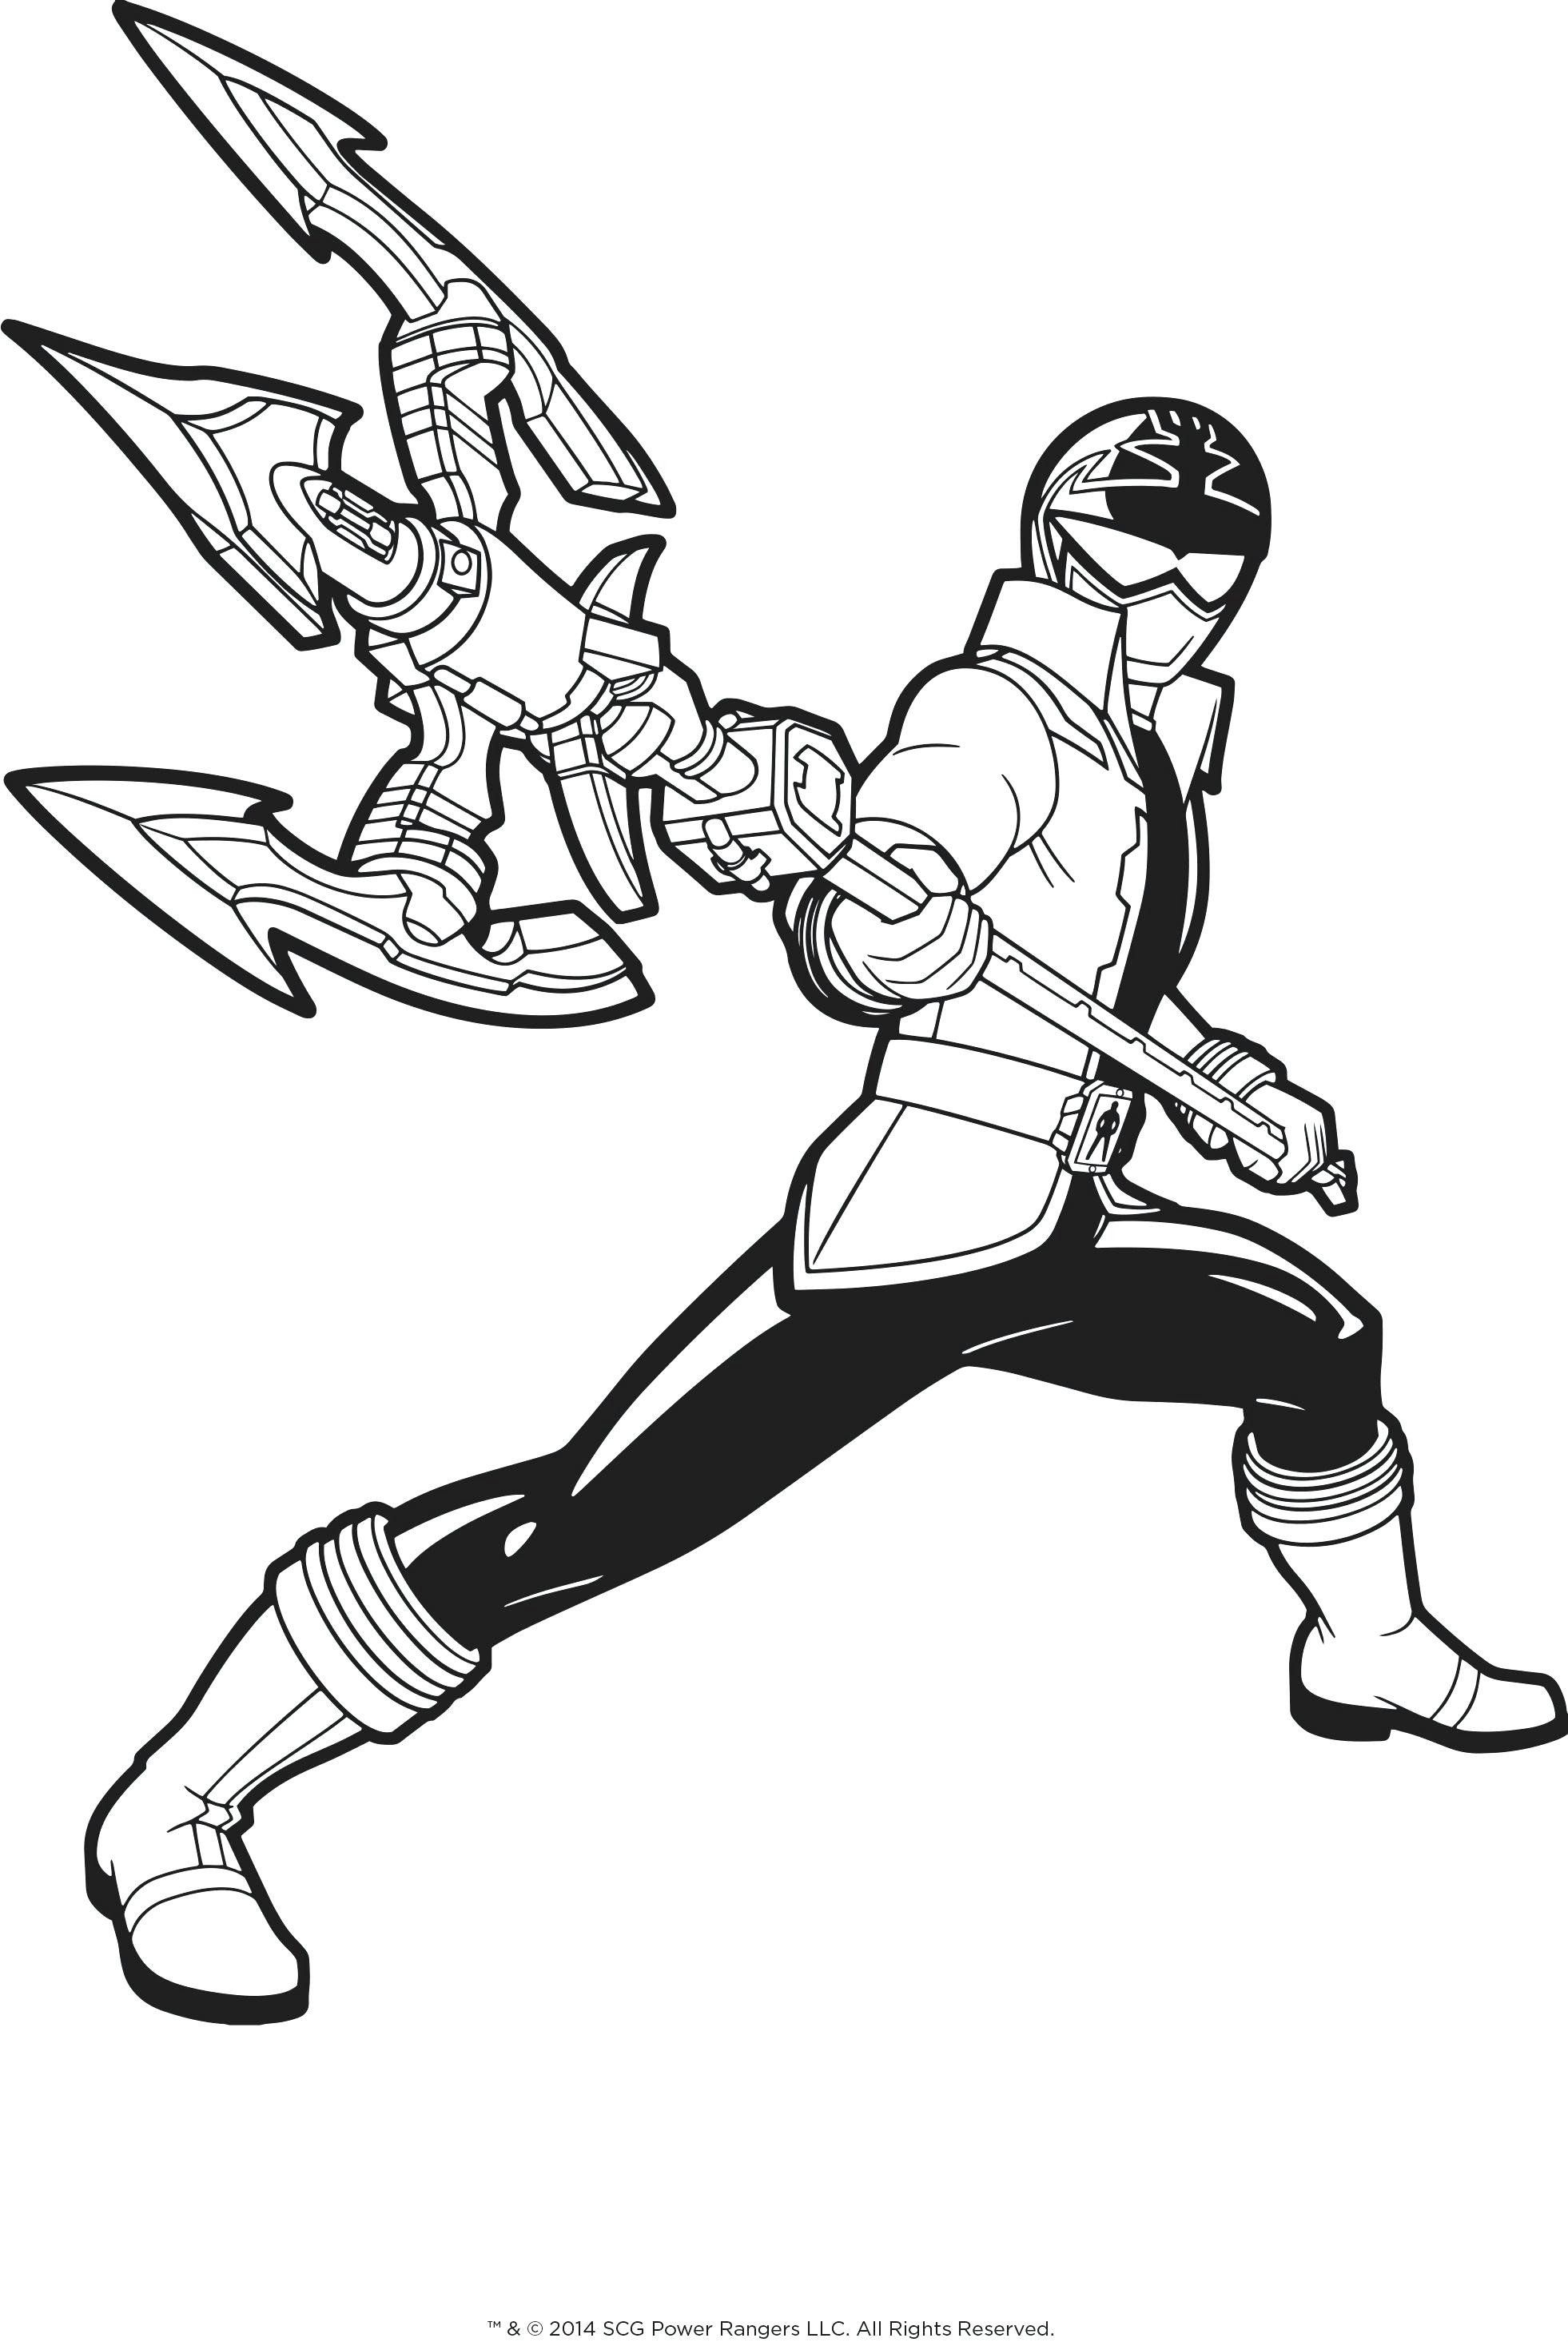 Power Ranger Coloring Pages Awesome Power Rangers Dino